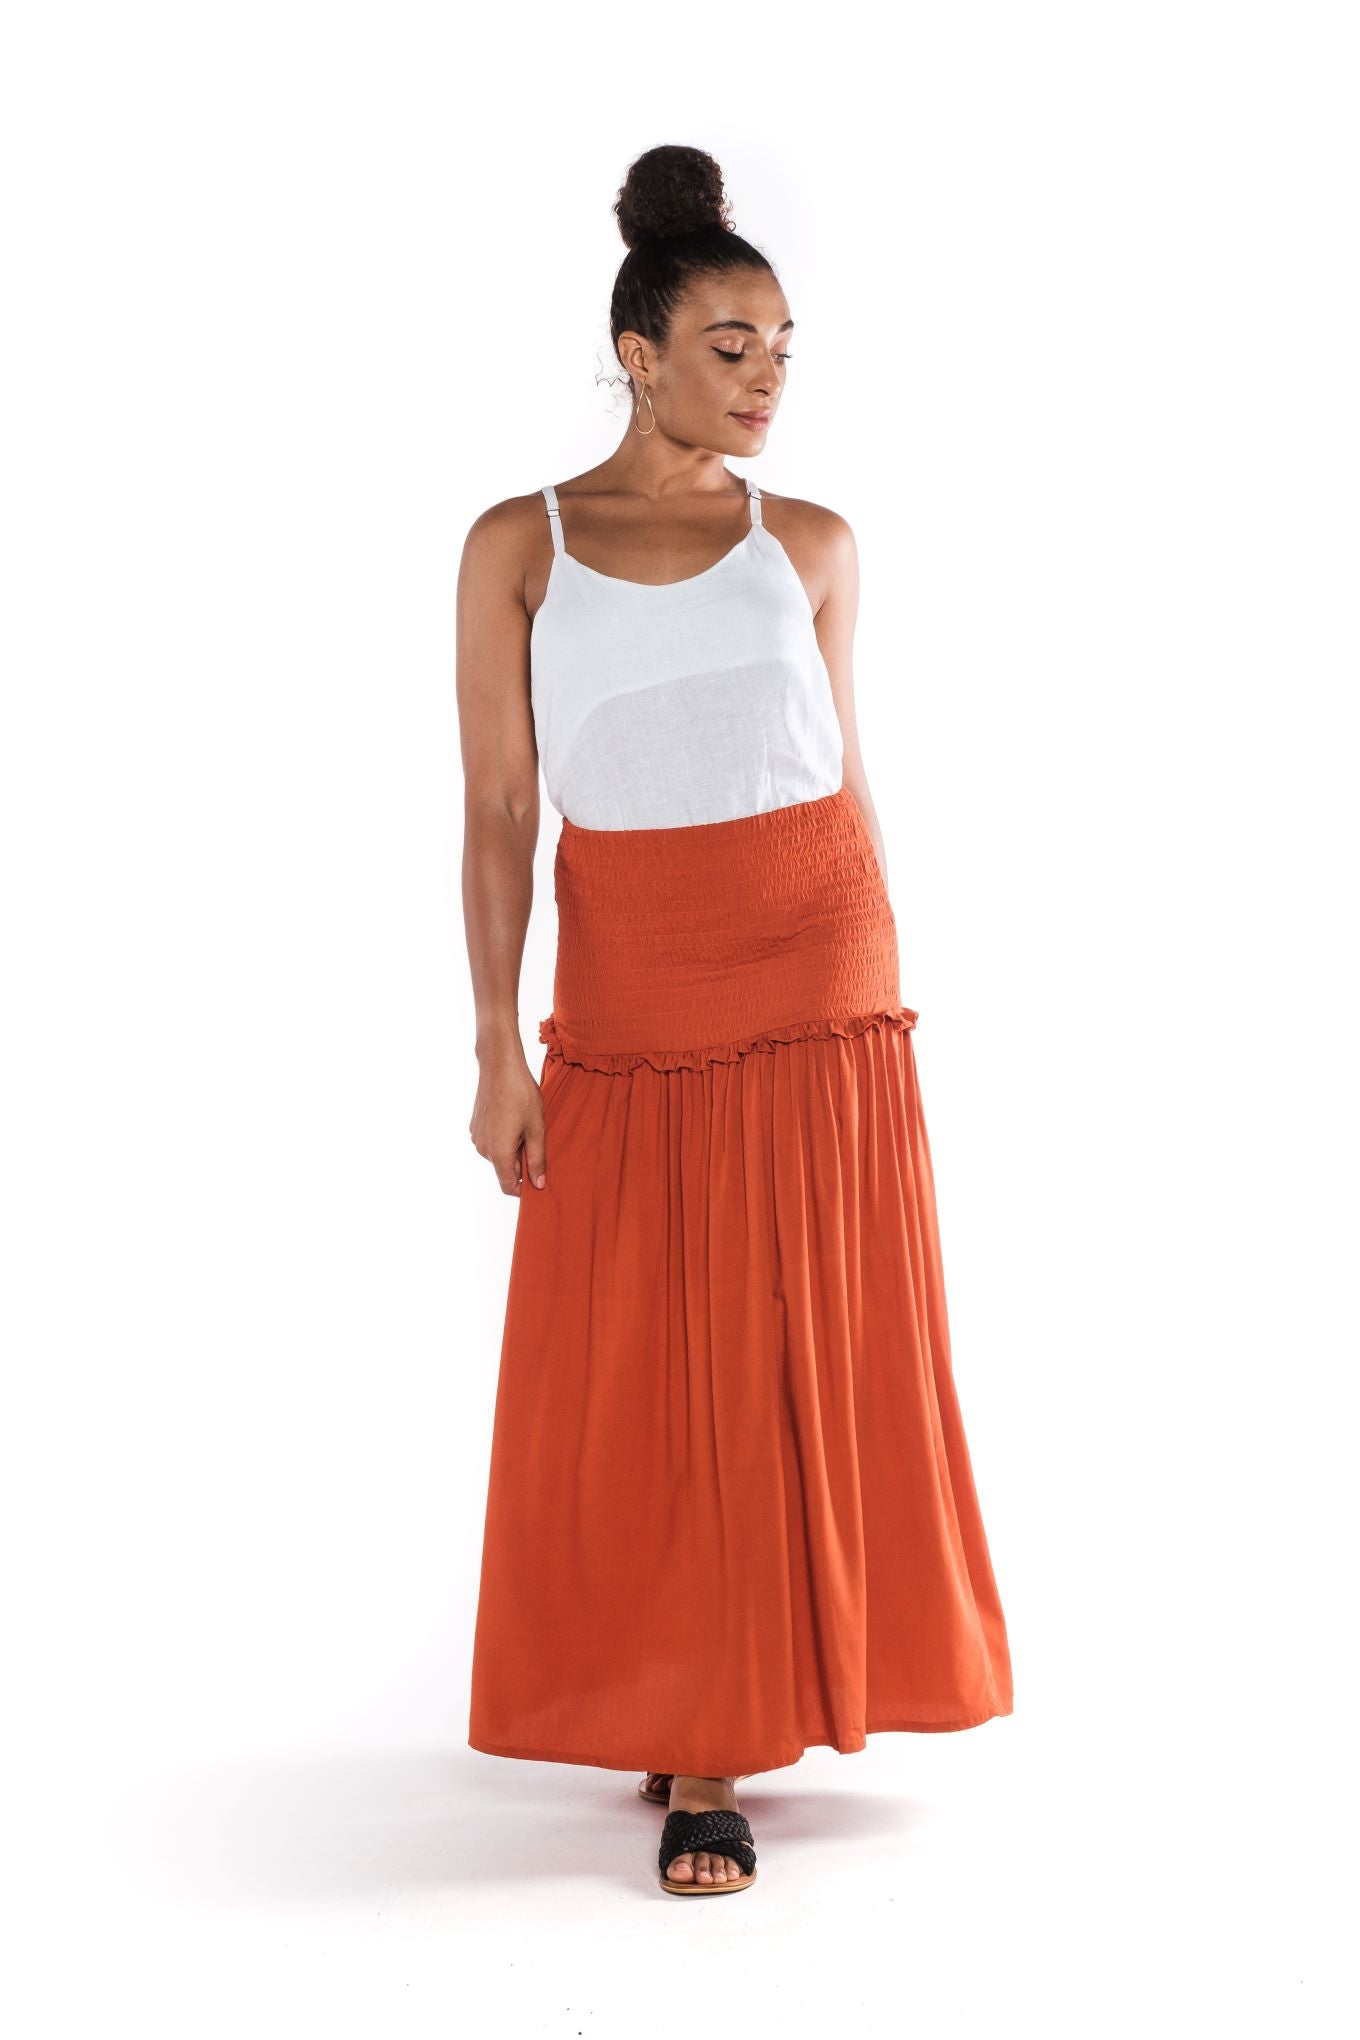 Asmara Butik Skirt Nia And Top linen Top Women's Wear made in Indonesia Eclectic Fashion Bali made & sourced in Indonesia